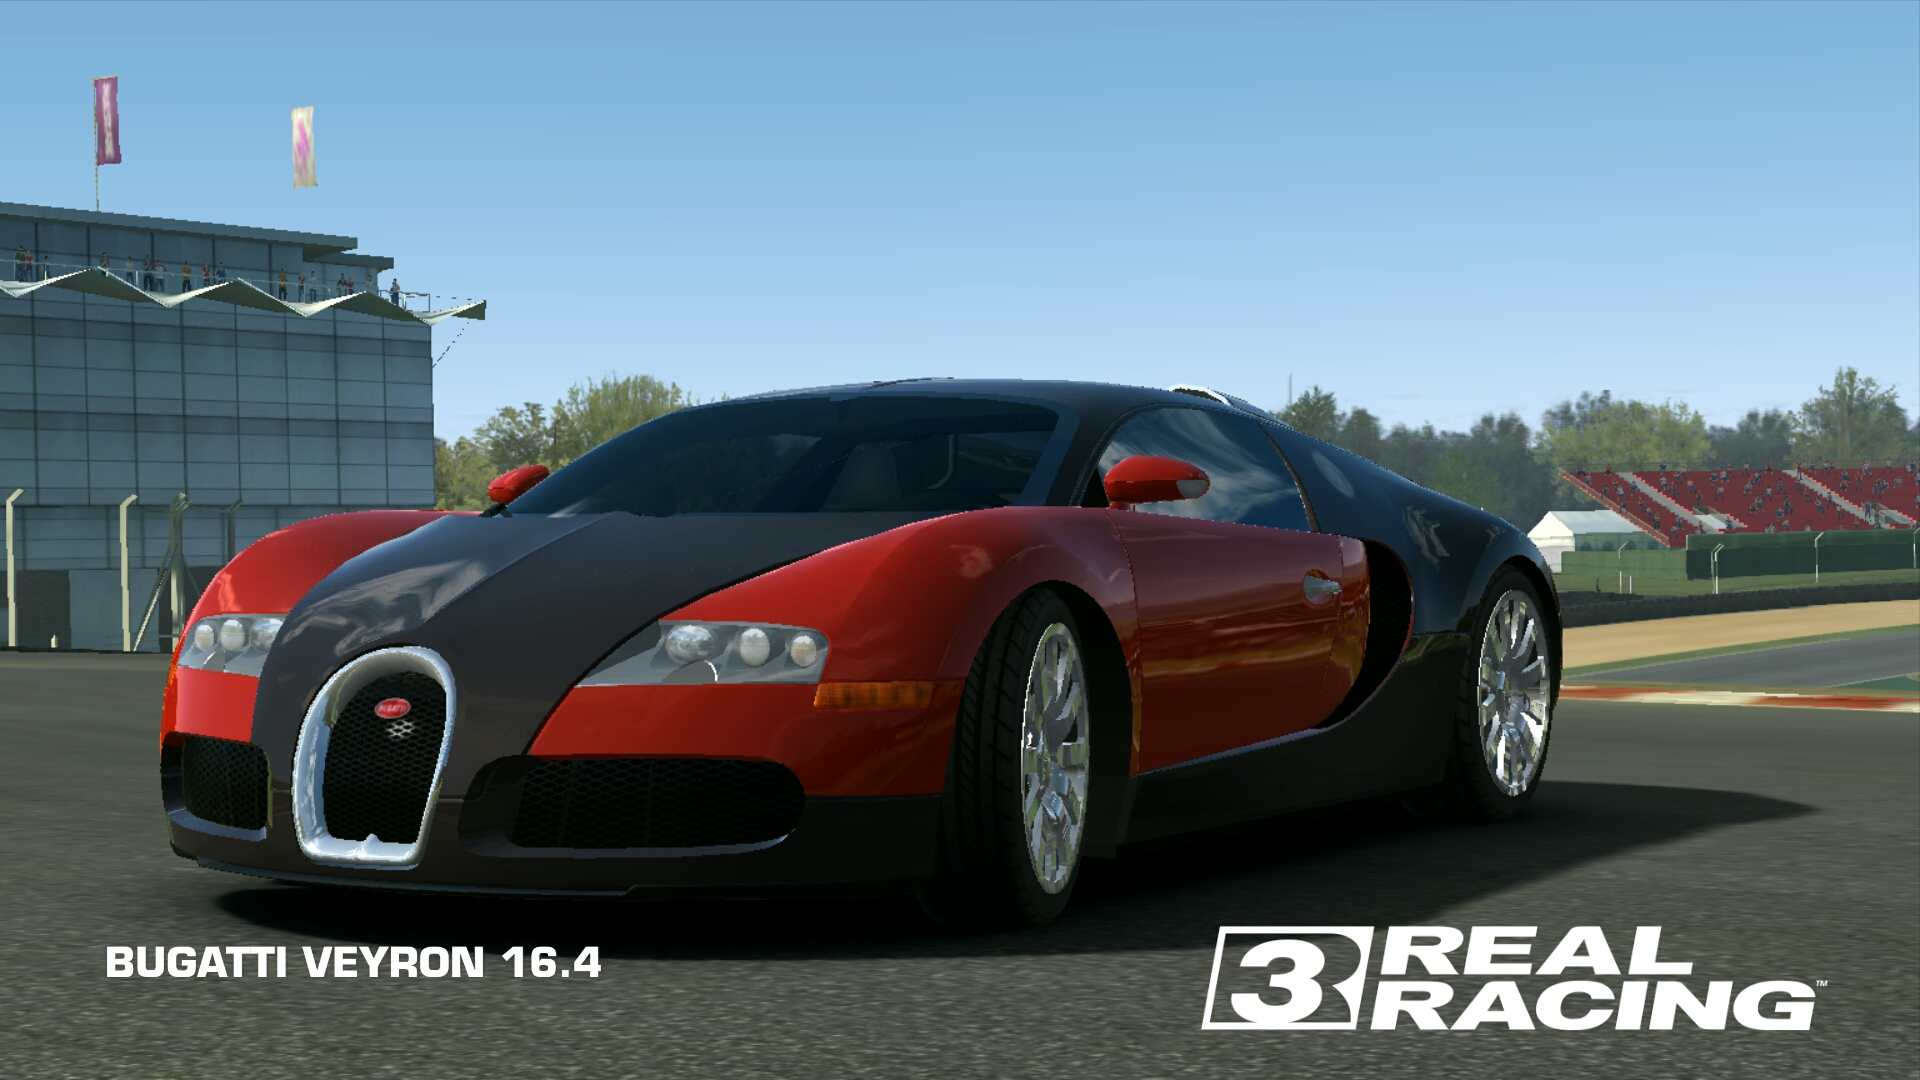 BUGATTI VEYRON 16.4 | Real Racing 3 Wiki | FANDOM powered by Wikia